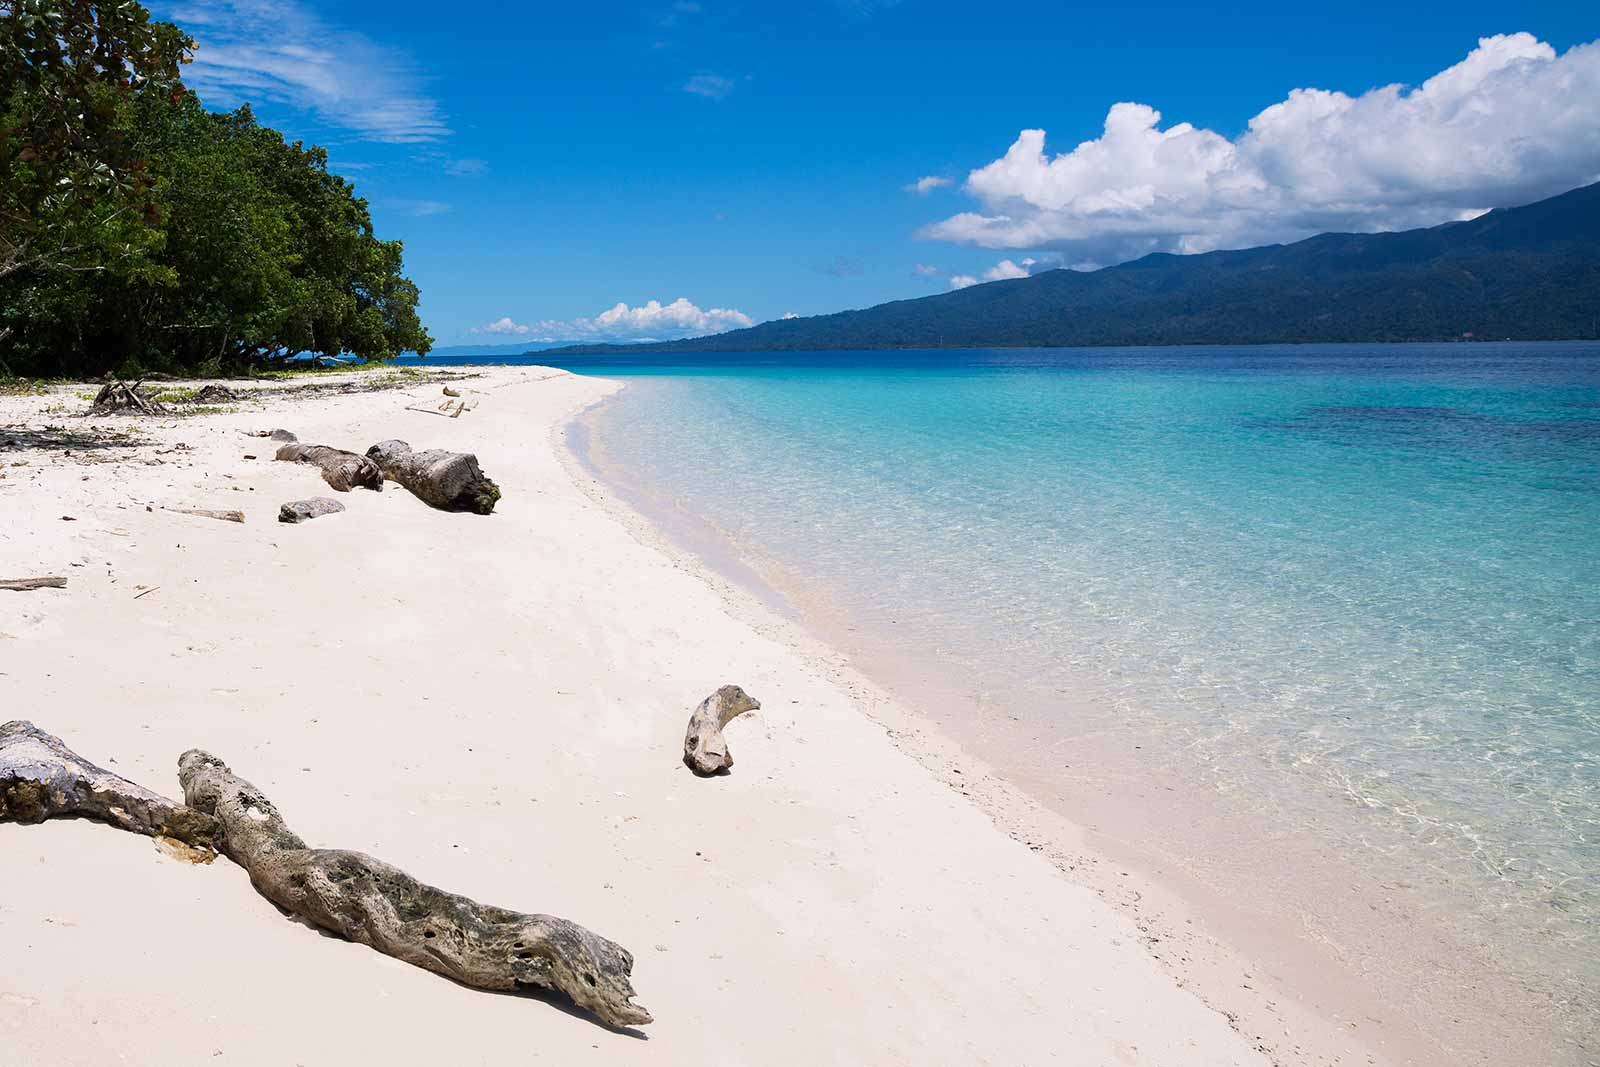 Maluku Islands: Saparua offers the best beaches with crystal clear water with pretty much no one around.